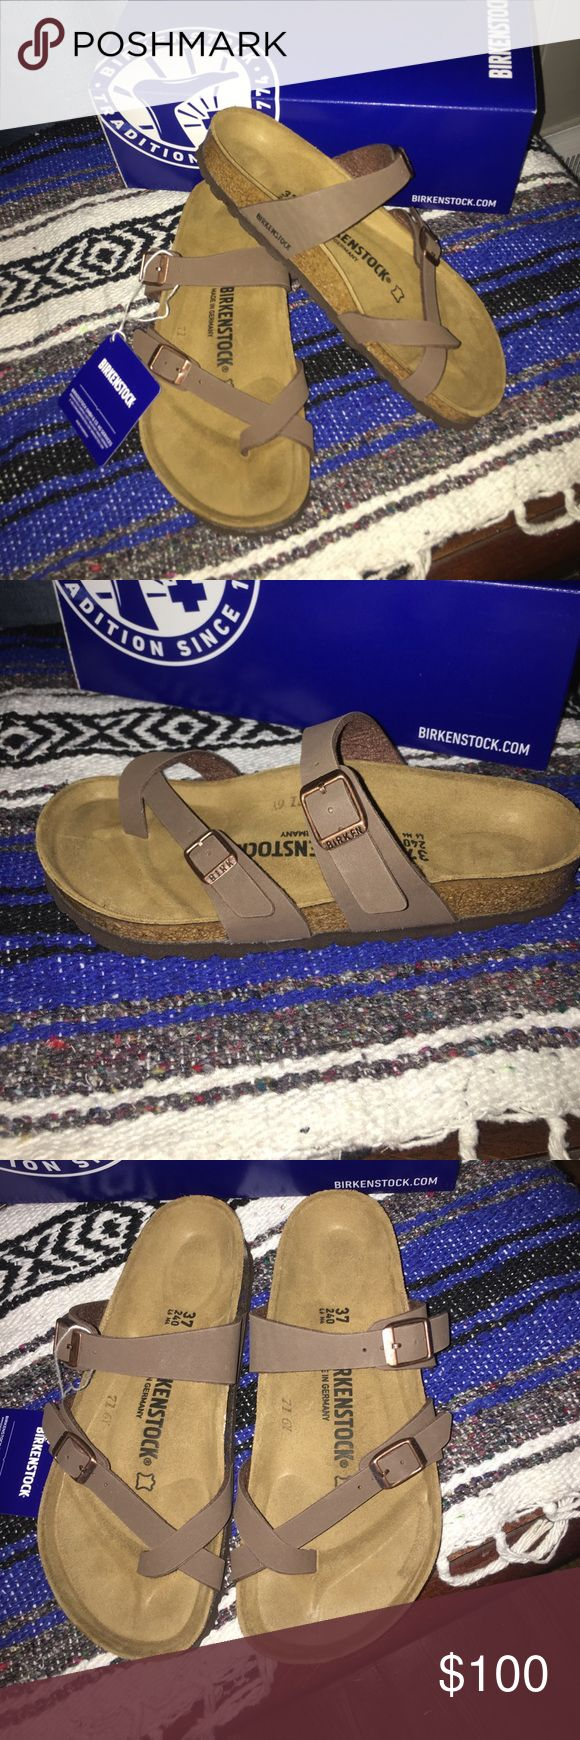 Birkenstock Mayari- Mocha Brand new, still have tags & original box. Beautiful Mocha colored Birkenstock's! Perfect for summer and the festival scene! Super cute toe strap with this Mayari style! Women's size 6 (wide), but keep in mind, Birkenstock's tend to run on the big side so be sure 6 is your ideal size if you're interested in buying! 😊 Birkenstock Shoes Sandals